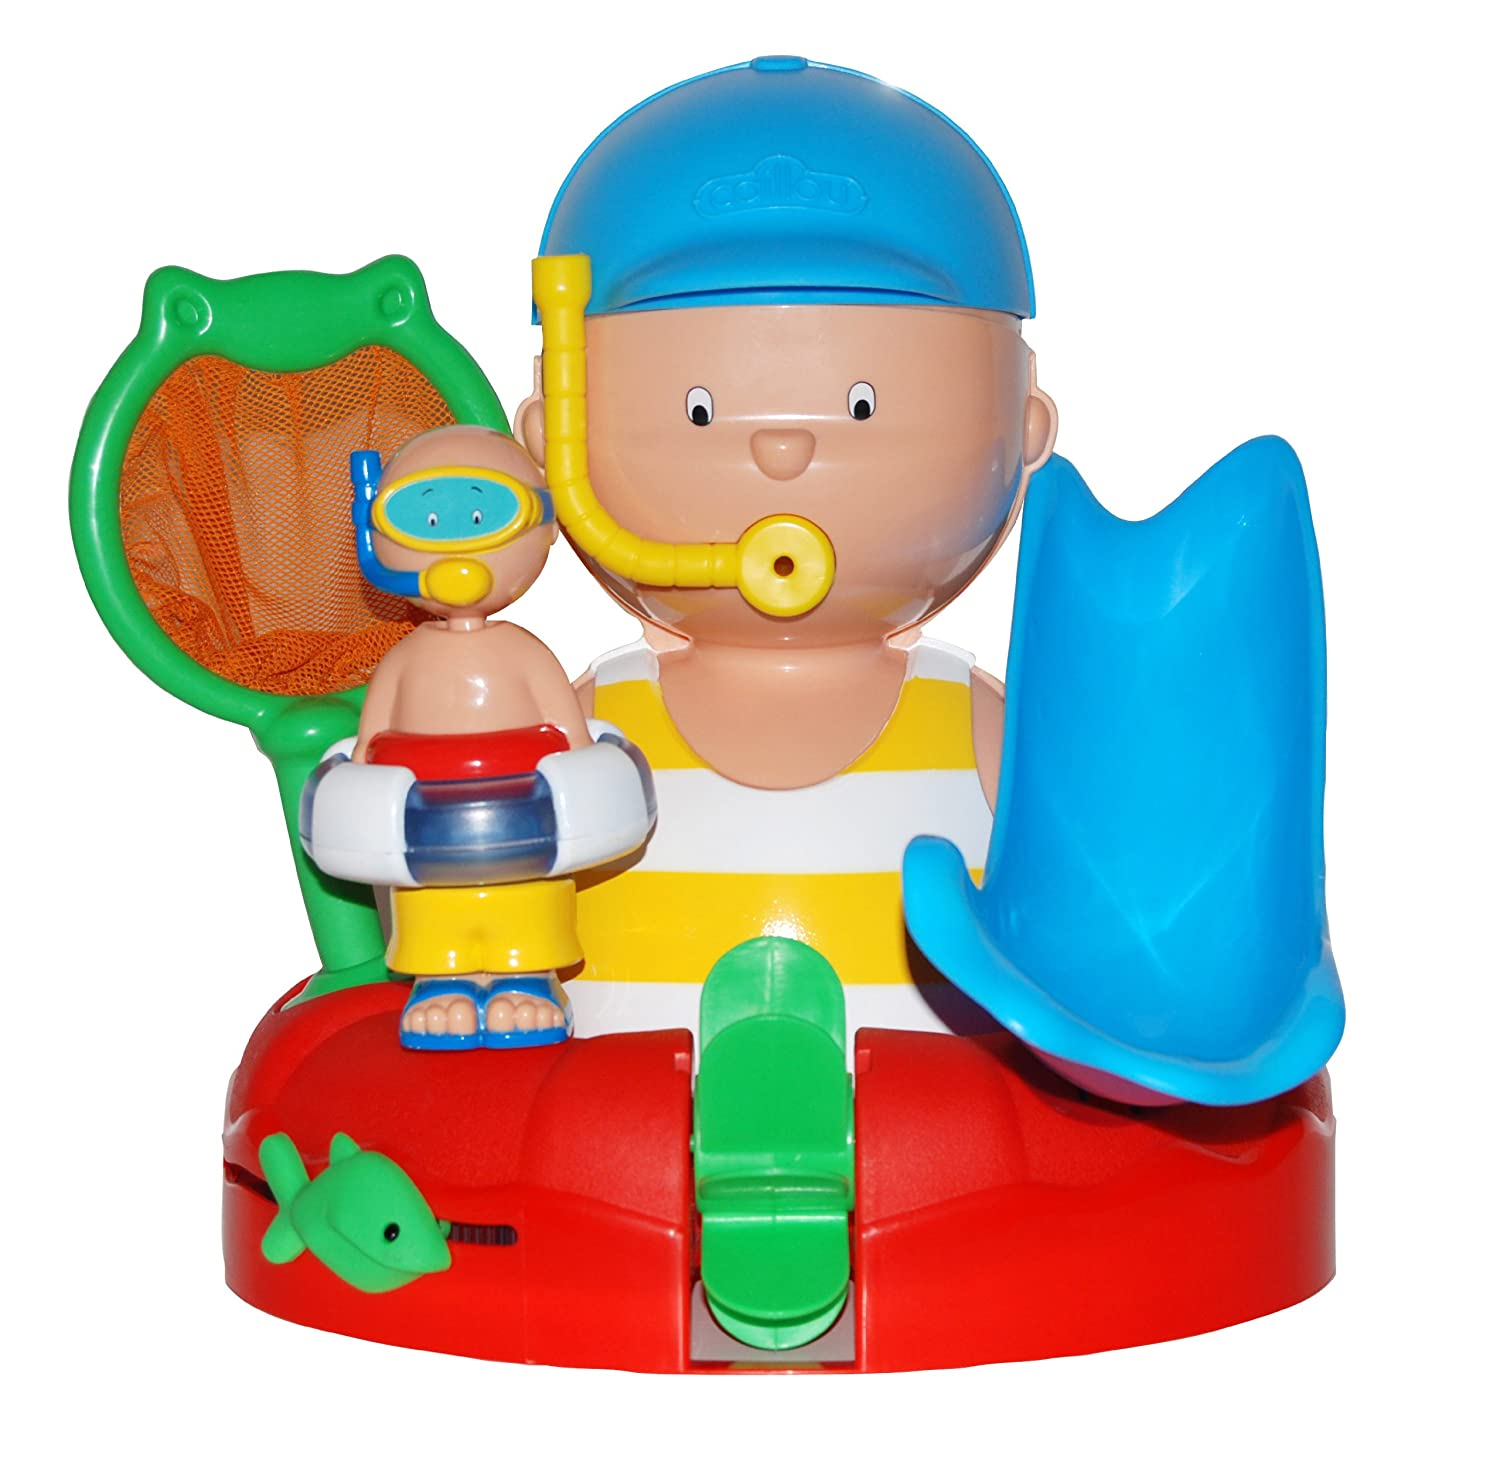 Amazon.com: Caillou Bath Time with You Activity Set: Toys & Games